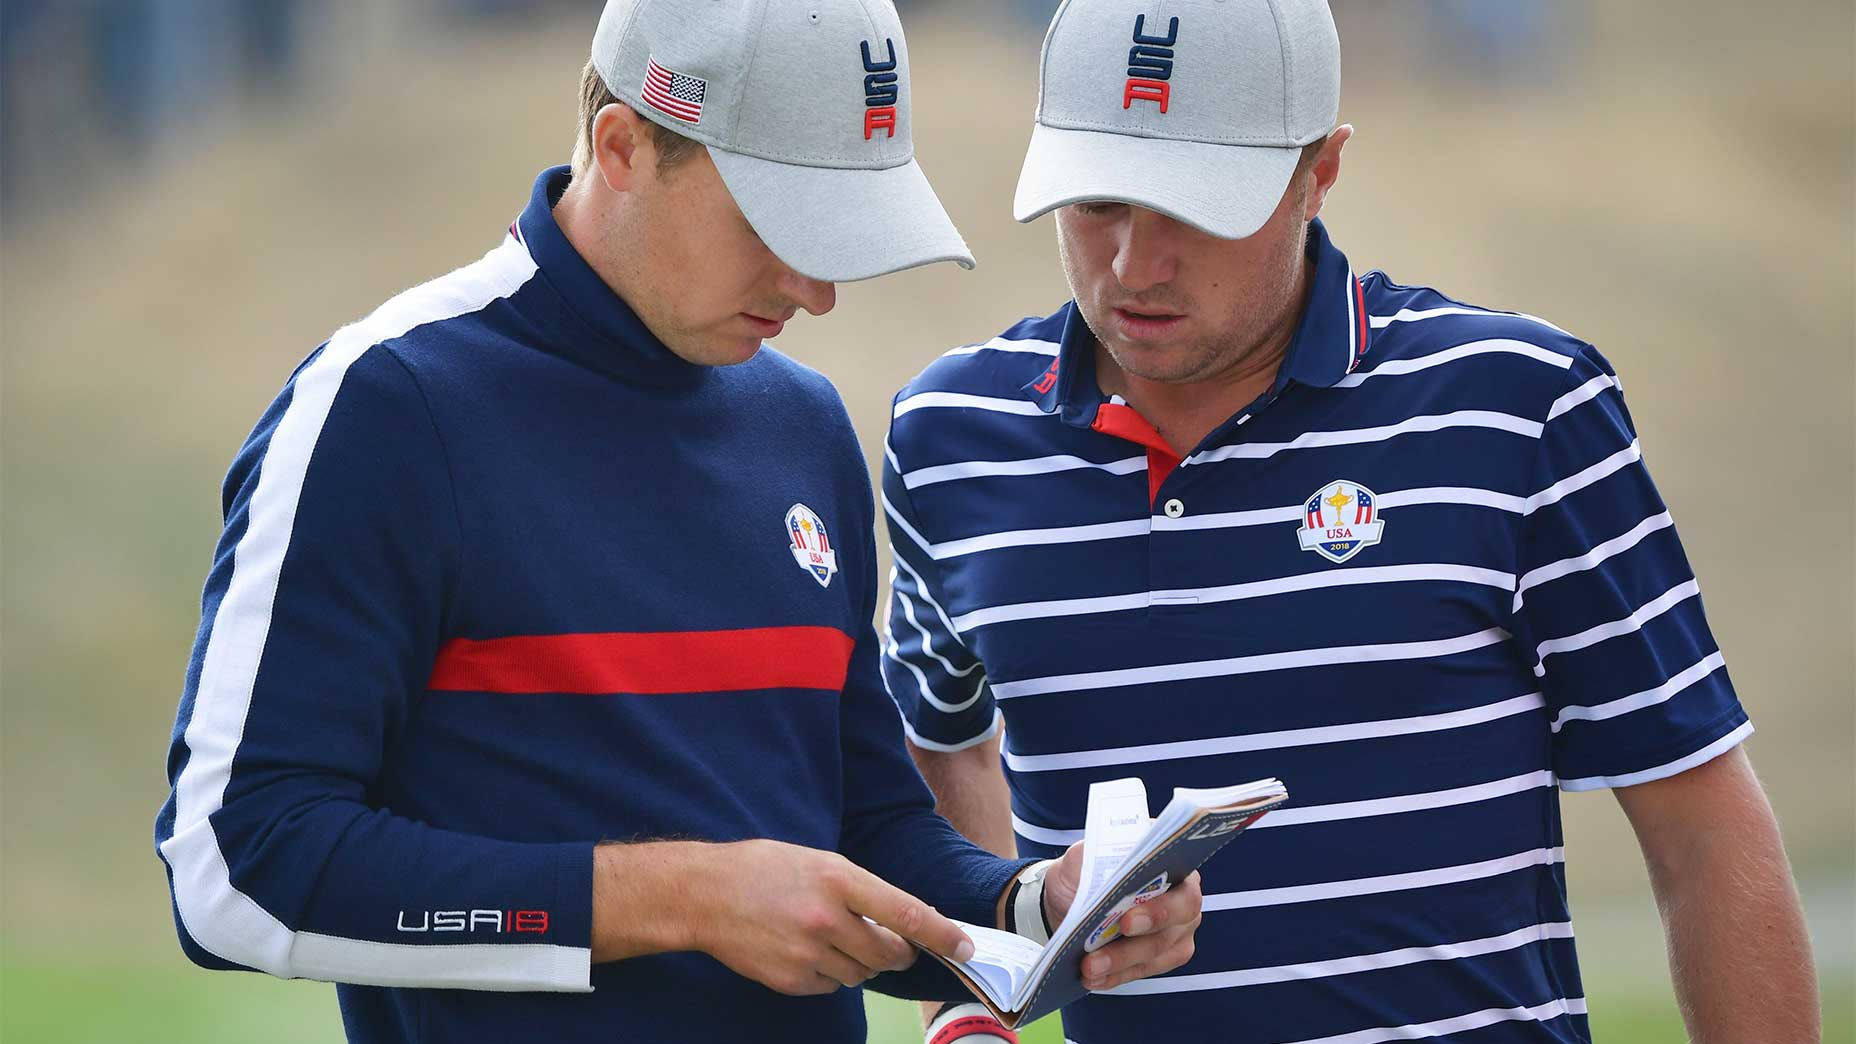 Justin Thomas and Jordan Spieth at the 2018 Ryder Cup.